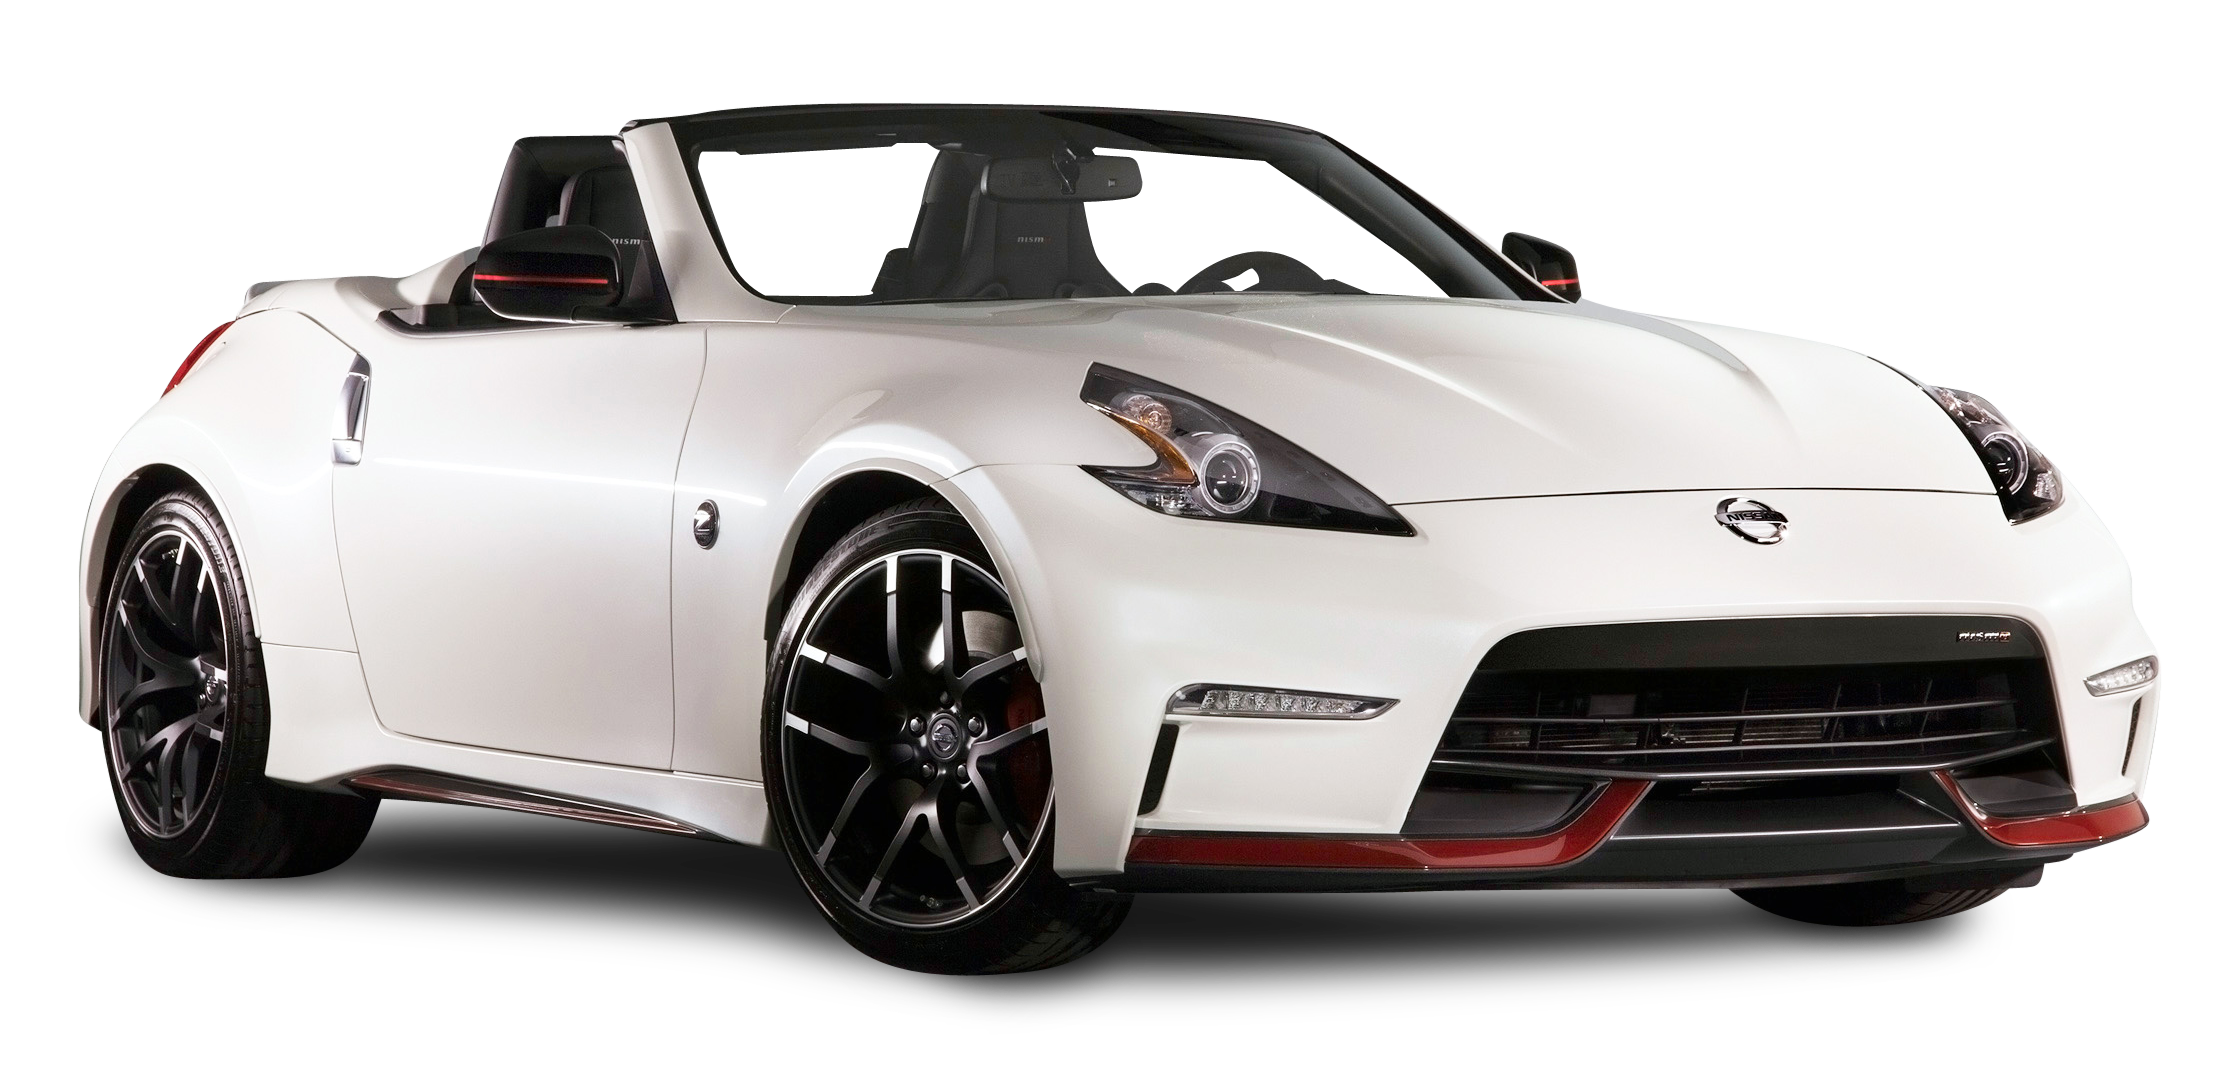 Nissan 370Z NISMO Roadster White Car PNG Image Nissan